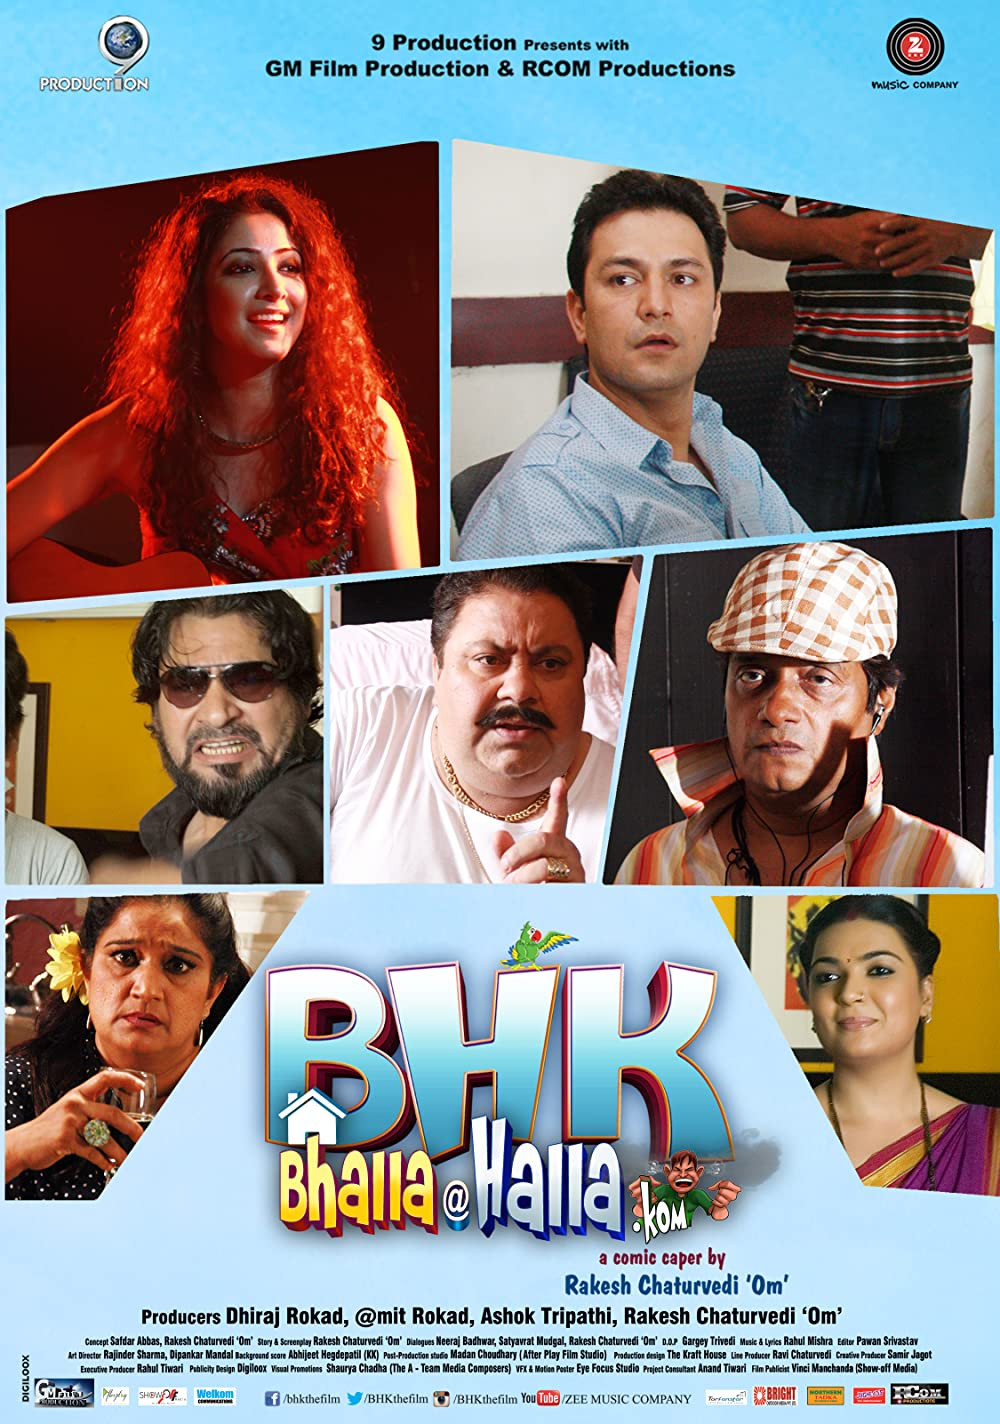 BHK Bhalla@Halla.Kom 2016 Hindi 480p HDRip ESubs 400MB x264 AAC